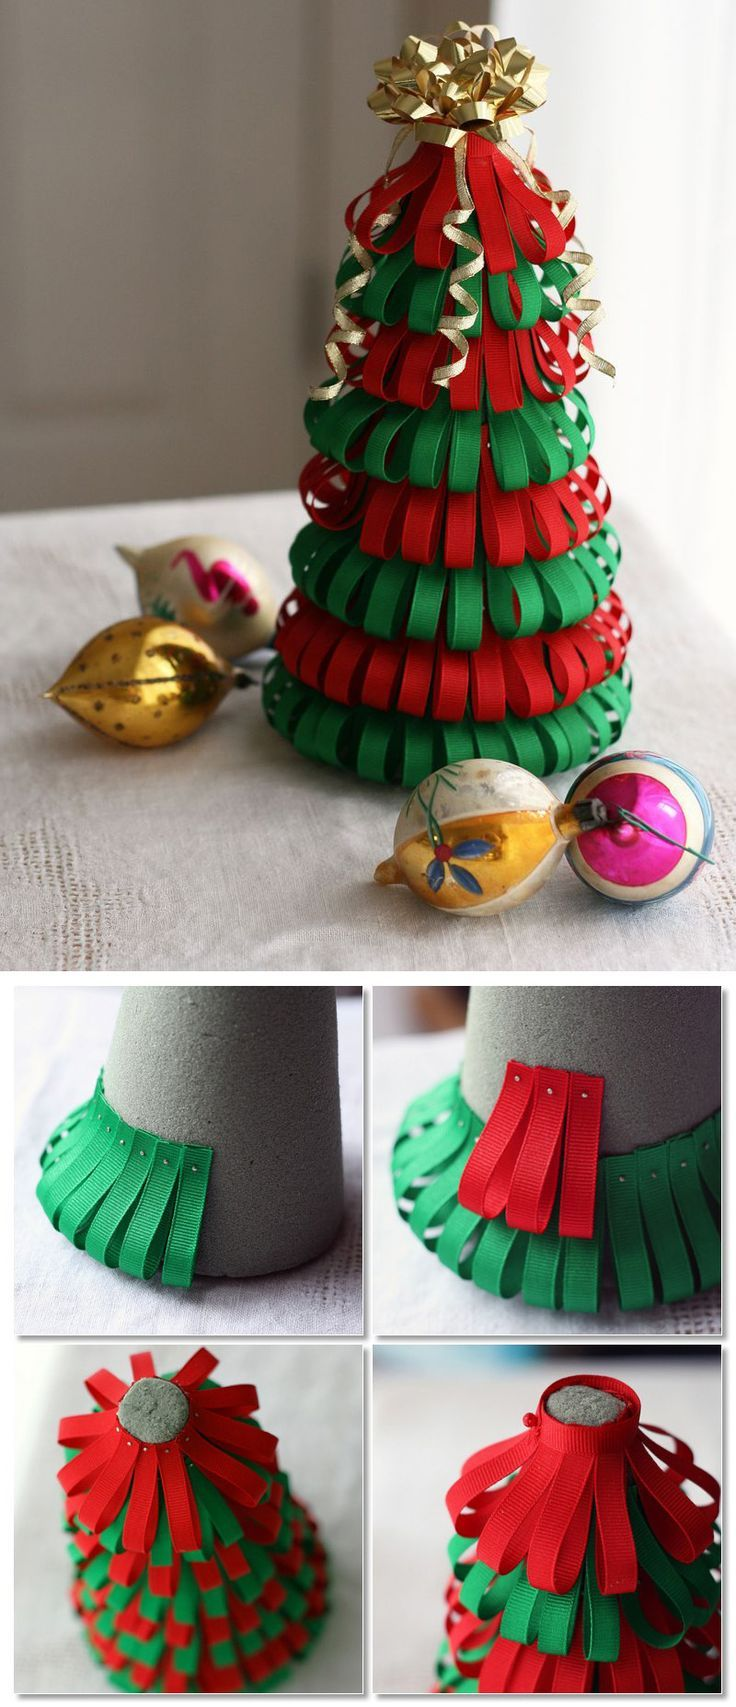 In This Diy Christmas Decorating Ideas For Teenagers Tutorial I Show